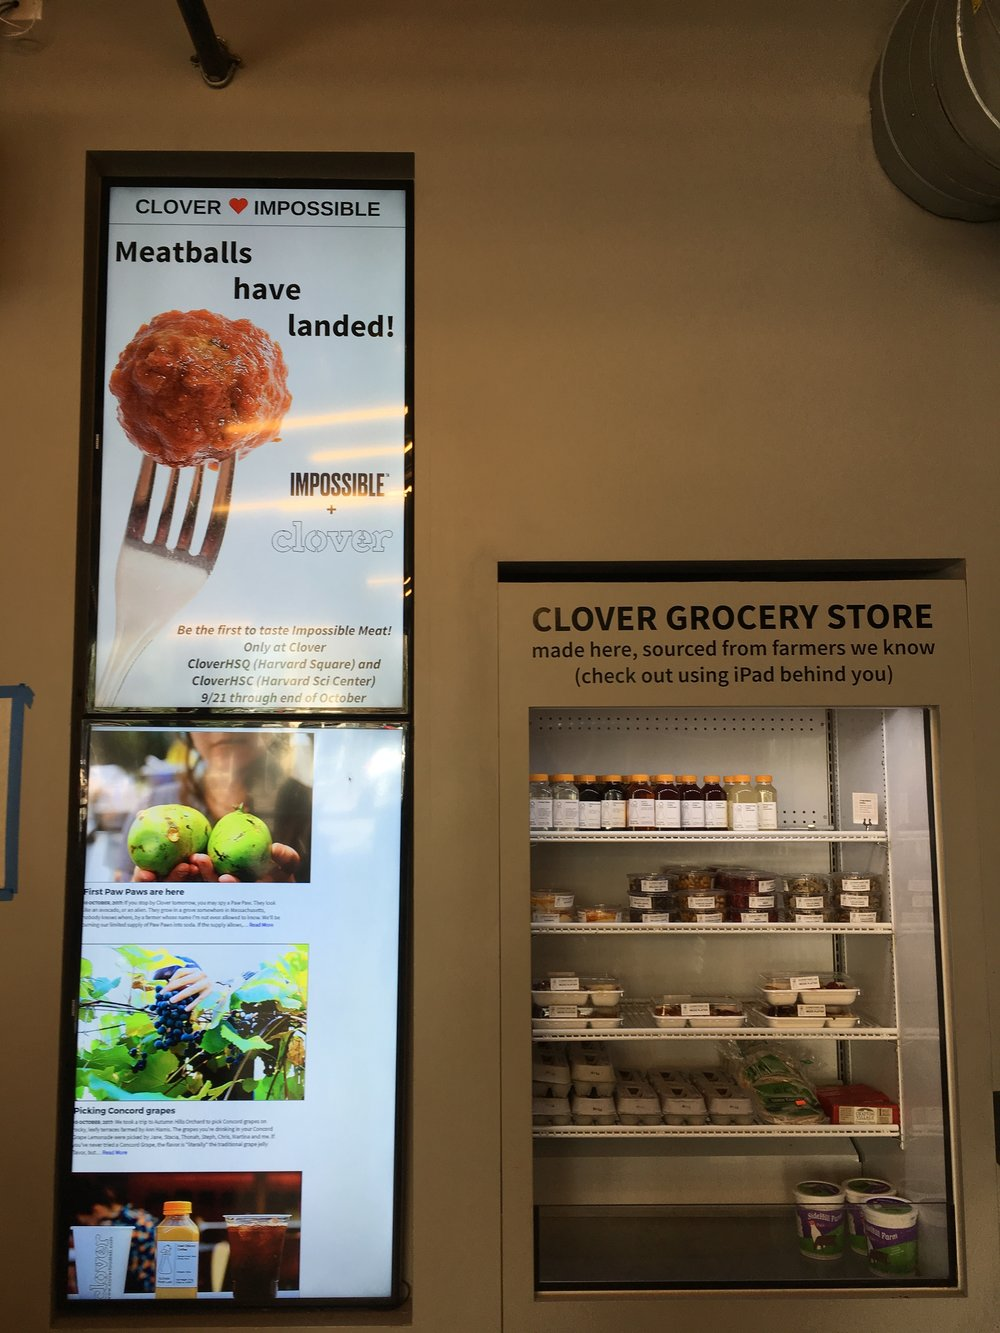 Digital displays and iPad ordering